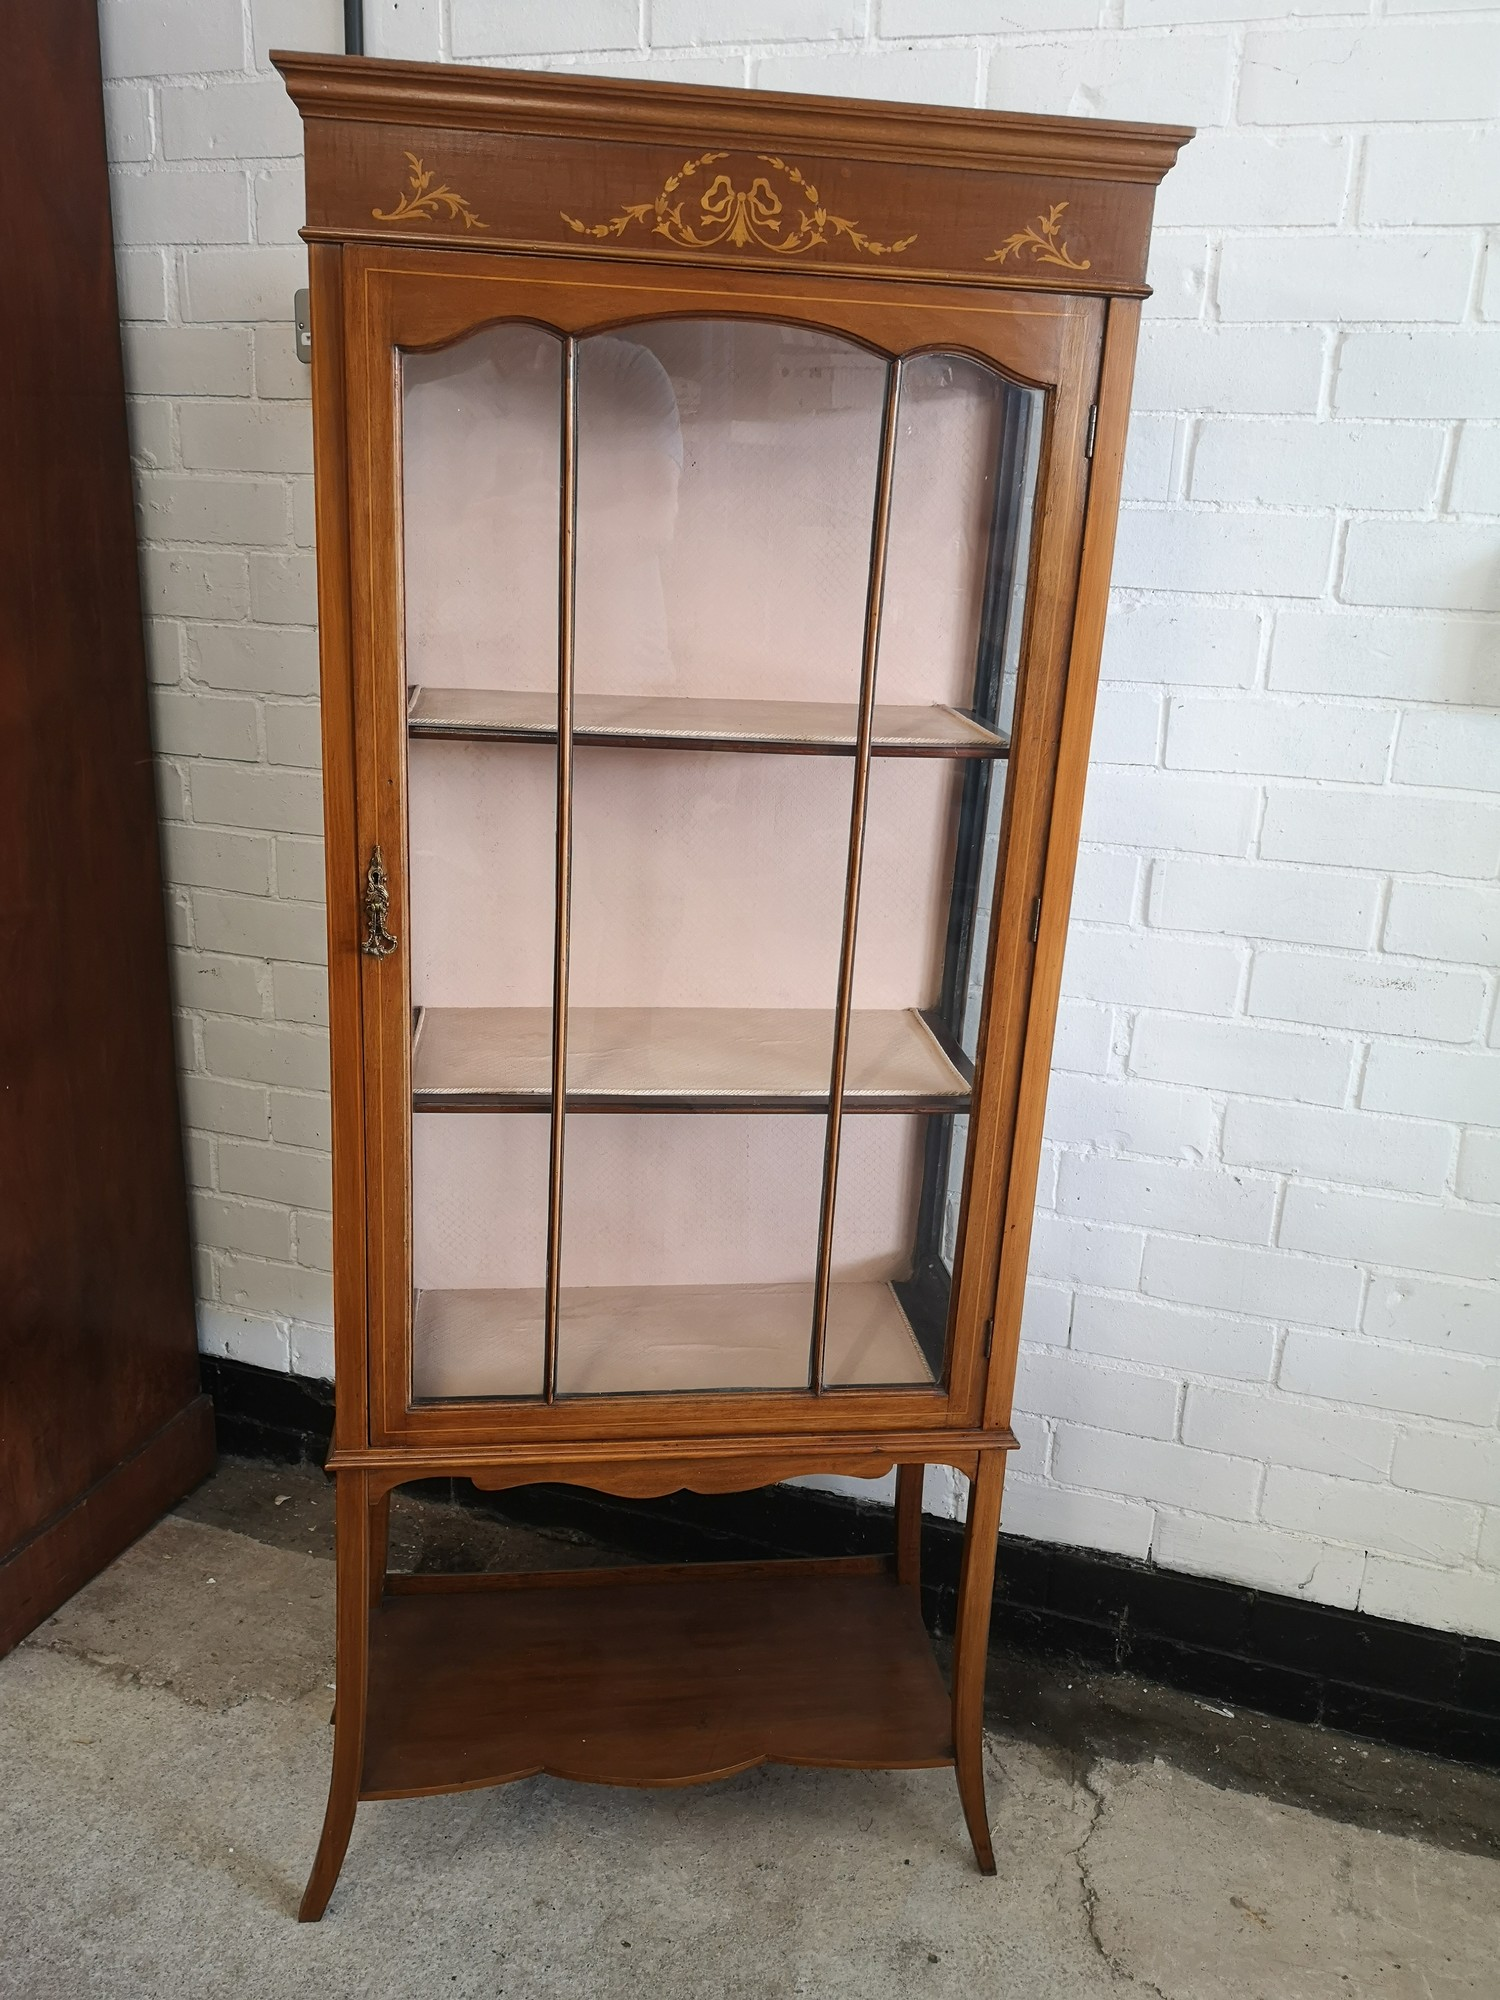 Beautiful Edwardian Inlaid 3 section display cabinet with inlays to top.